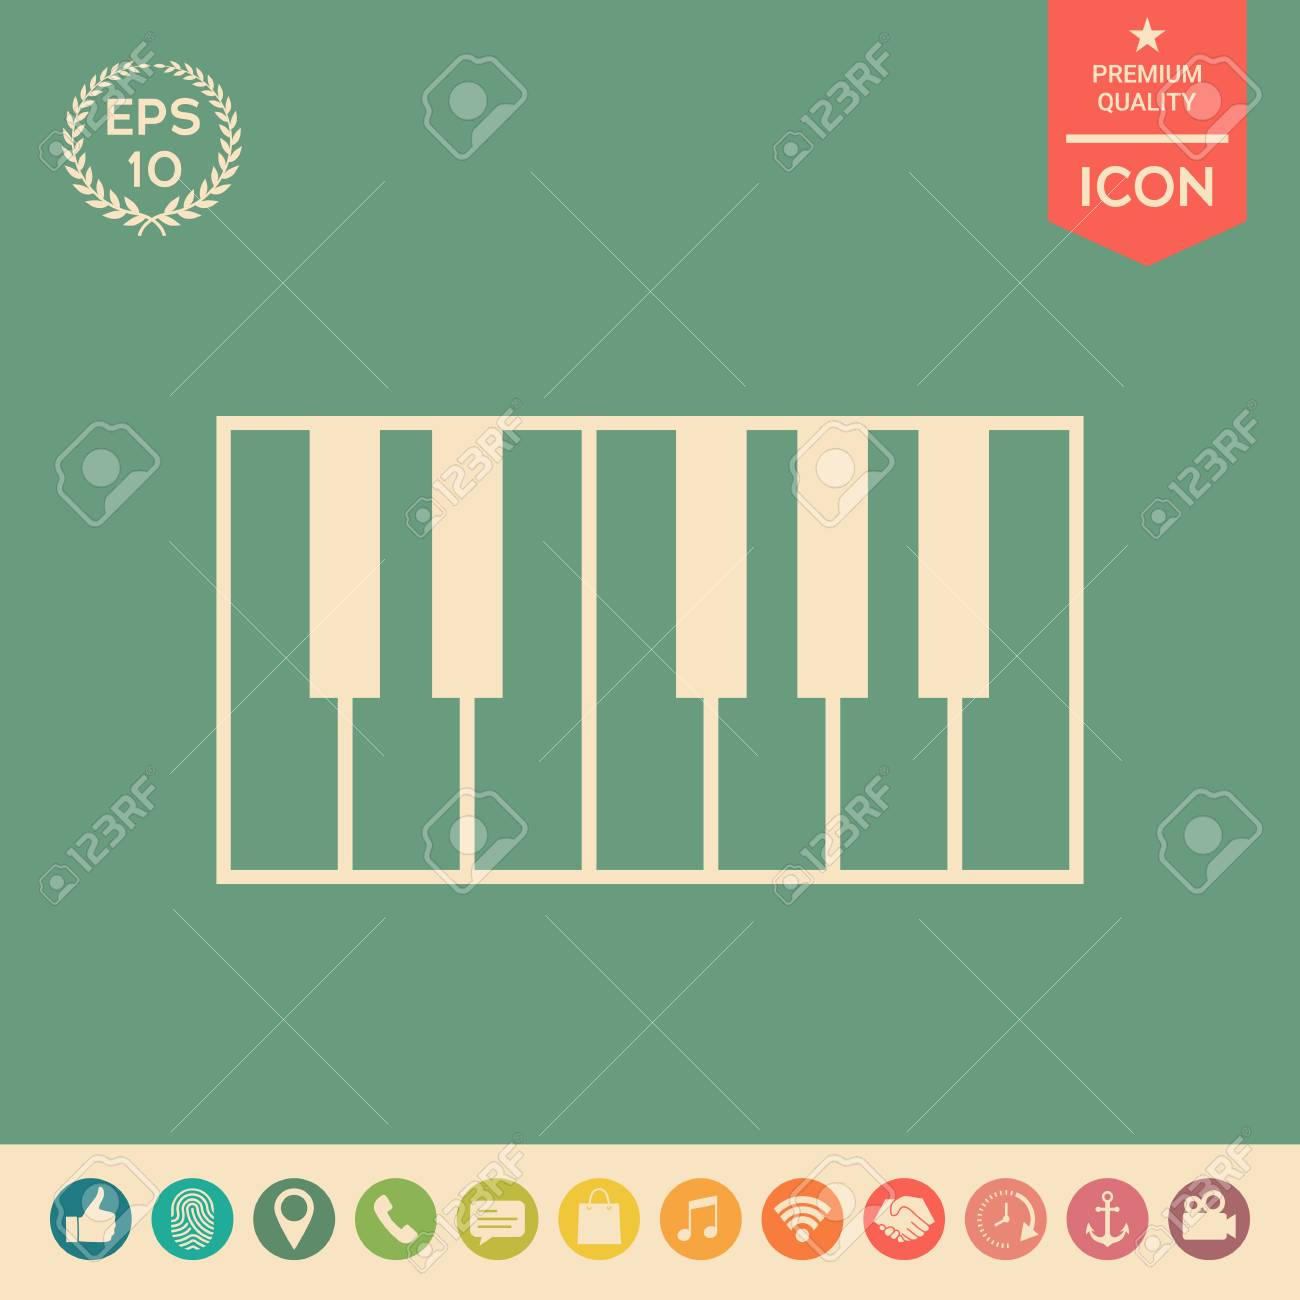 Piano Keyboard Icon Signs And Symbols Graphic Elements For